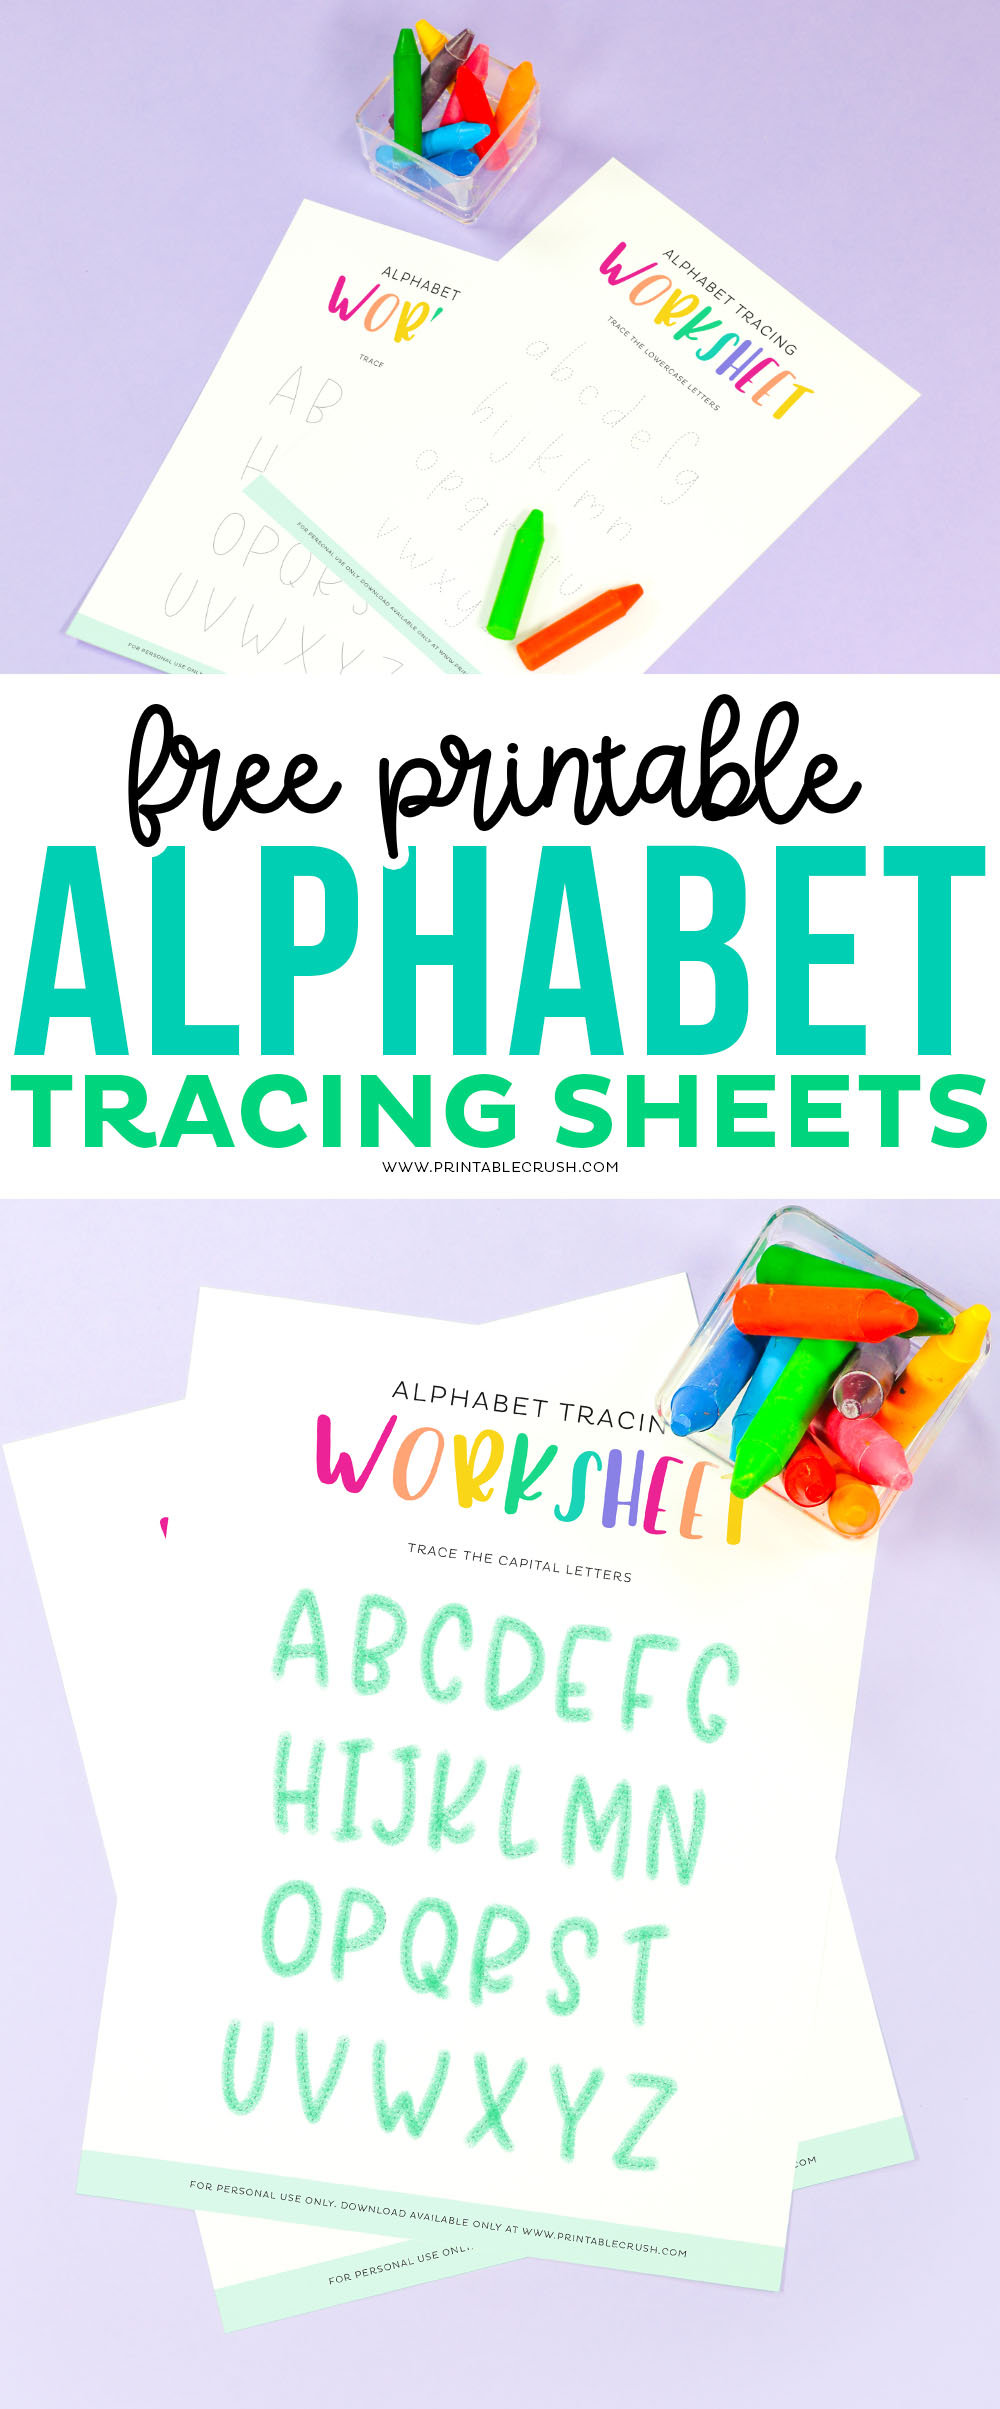 Free Printable Alphabet Tracing Sheets for Kindergarteners and Preschoolers - Preschool Alphabet Activity - Kindergarten Alphabet Printable - Printable Crush